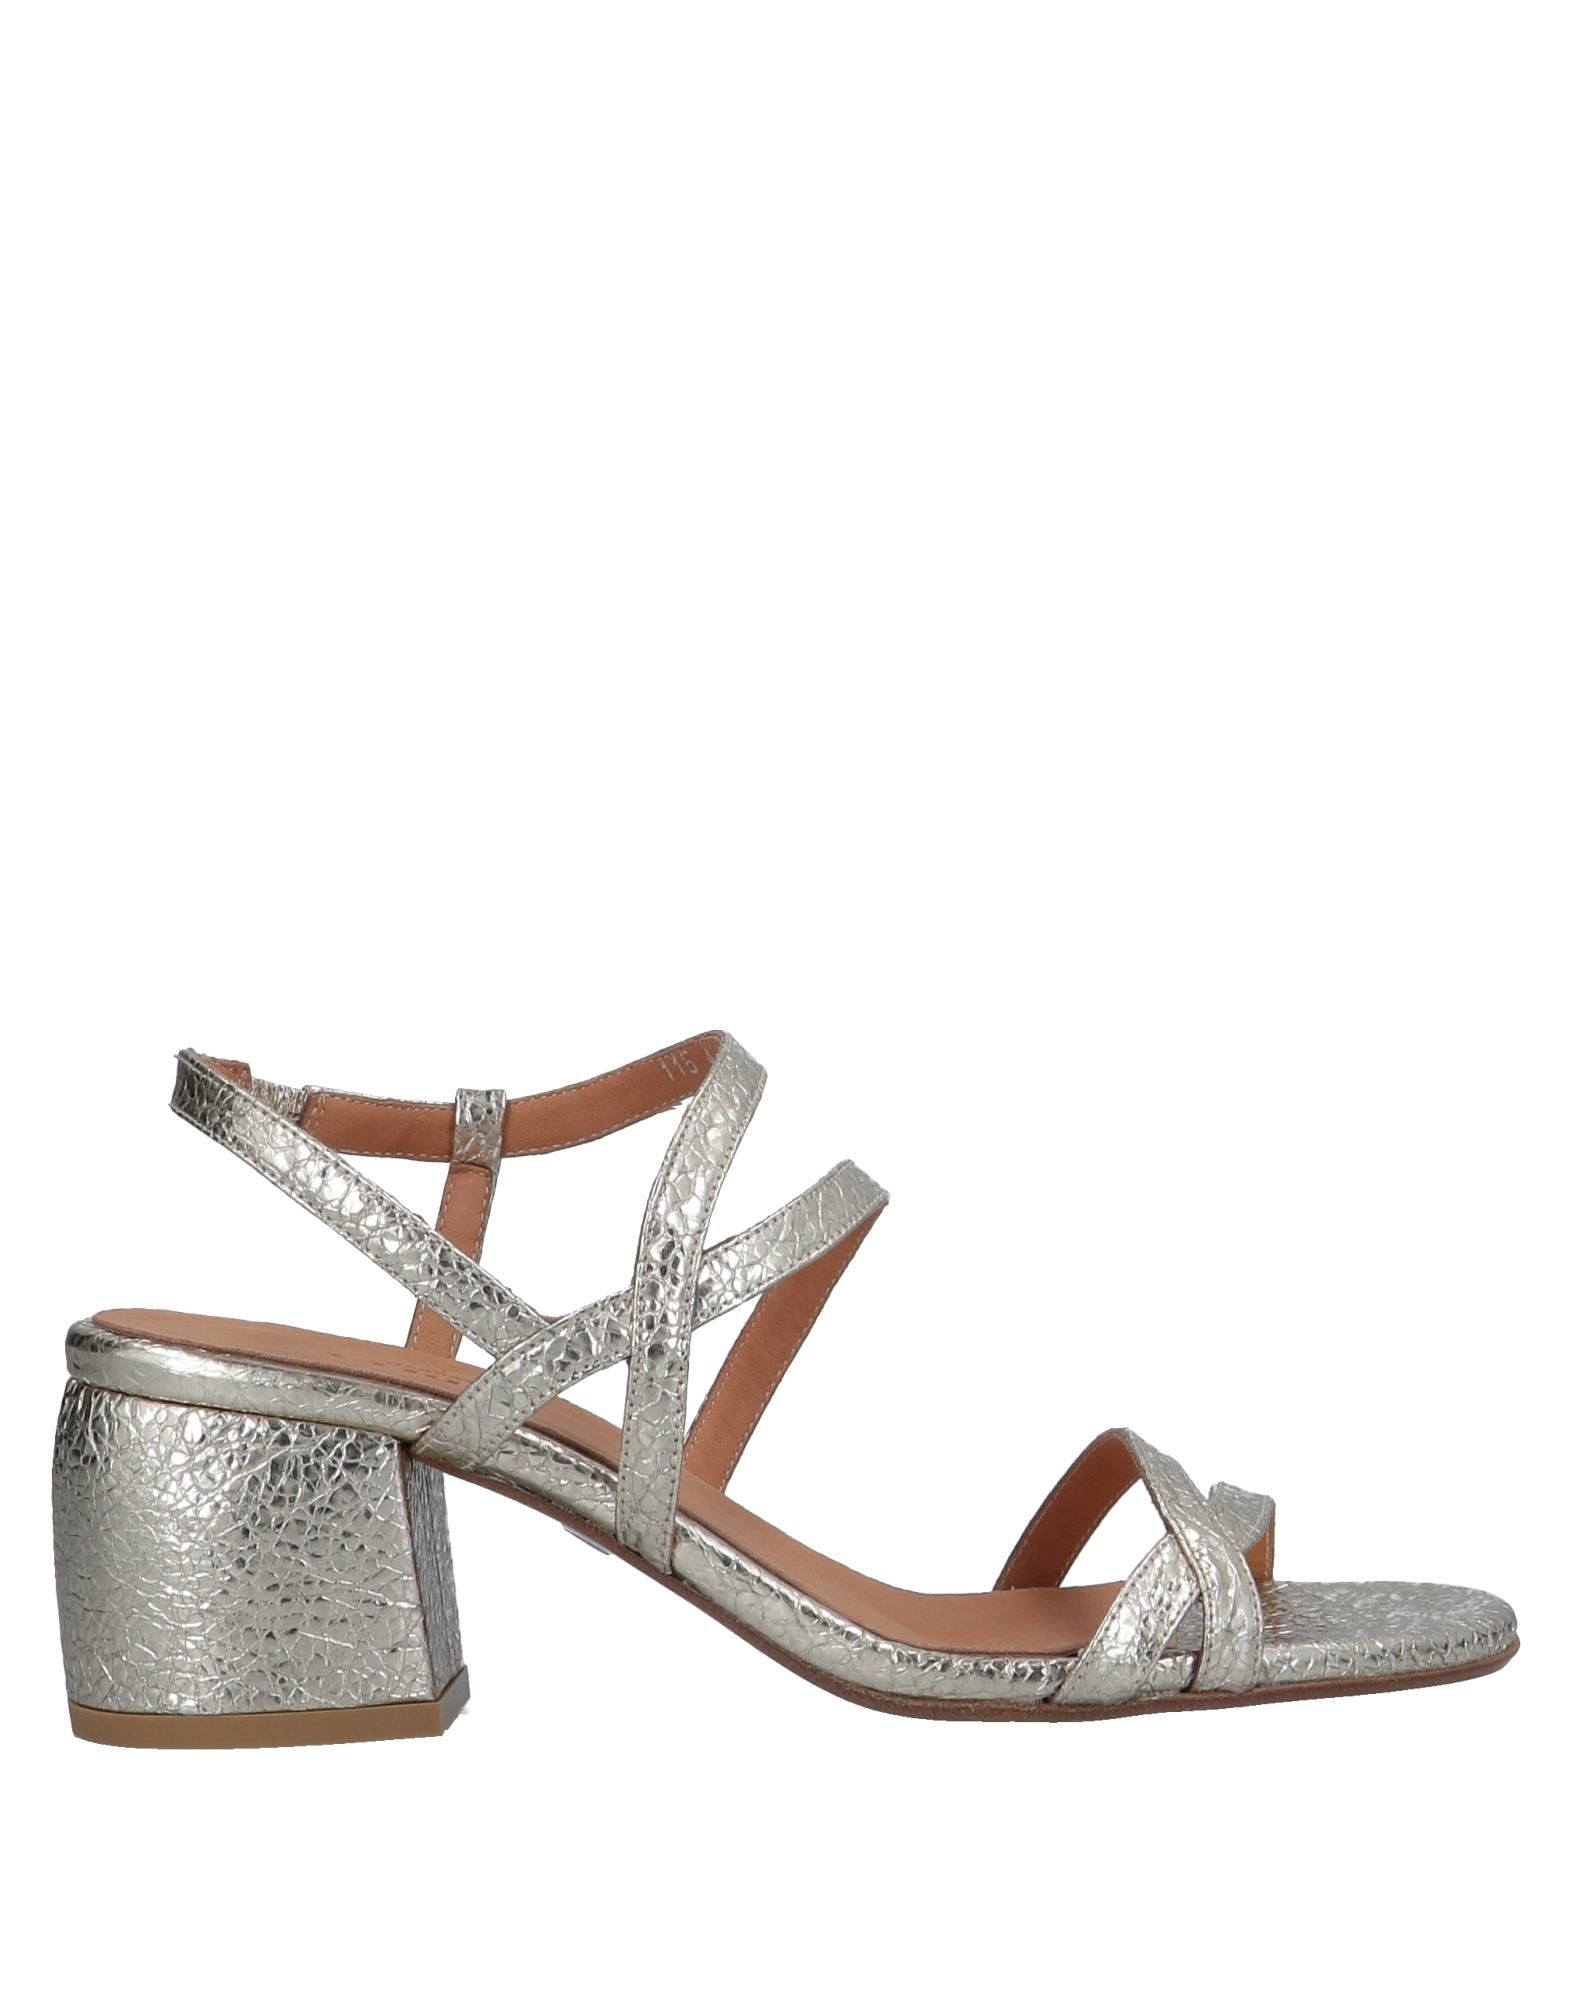 Audley Sandals - Women Audley Sandals online on 11575970CN  United Kingdom - 11575970CN on b2d669